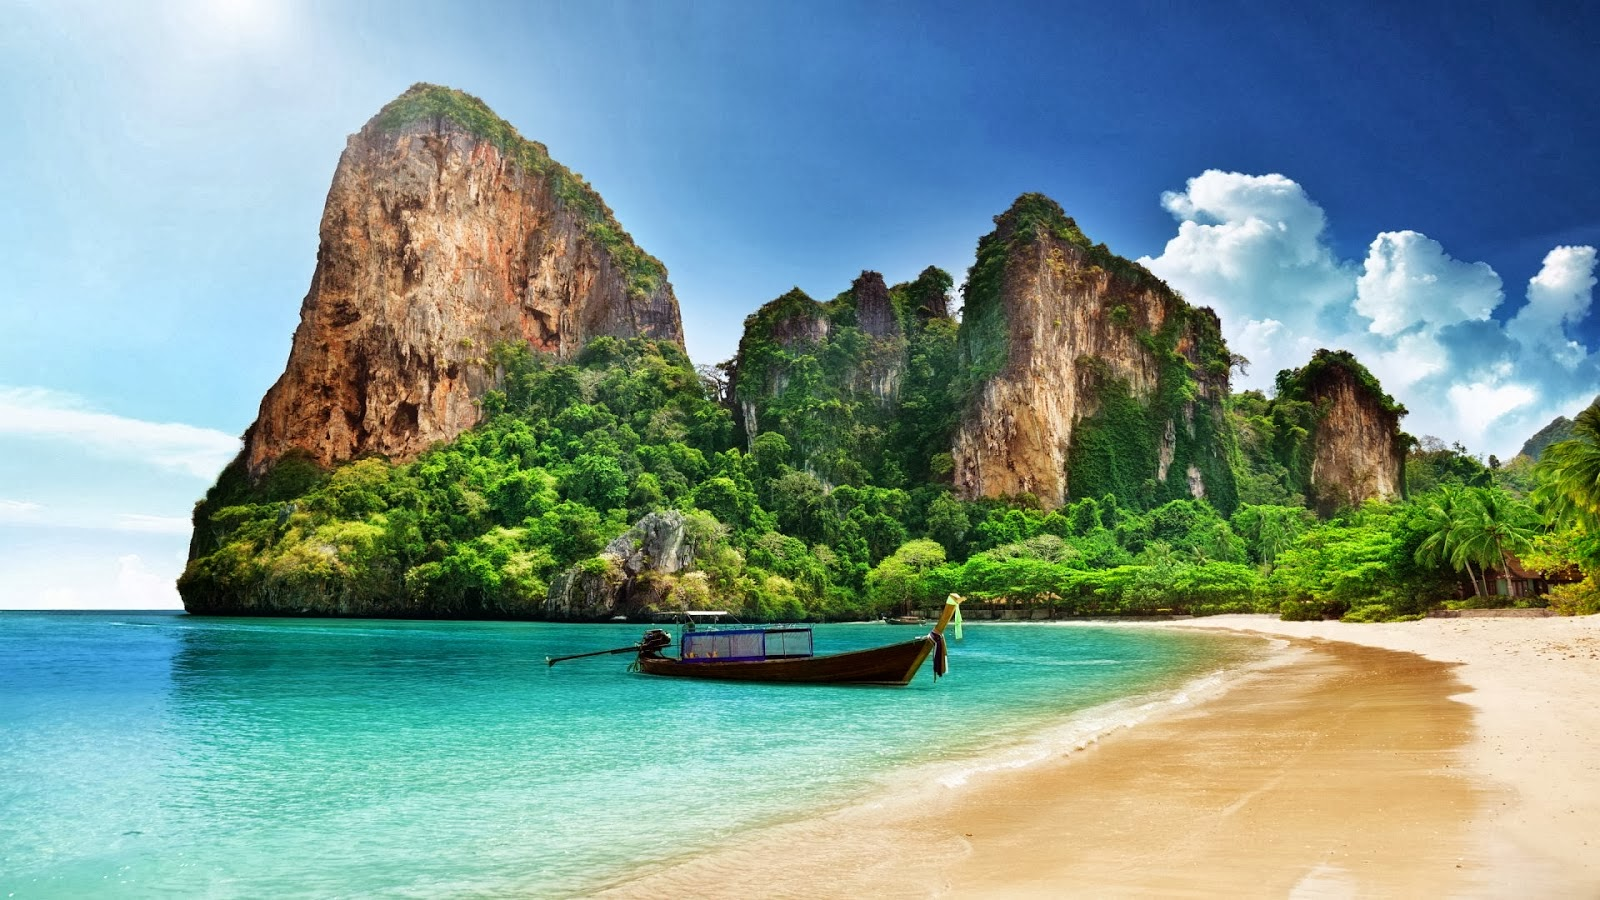 Beach Pictures Hd Wallpapers: HD WALLPAPERS: Download Thailand Beach HD Wallpapers